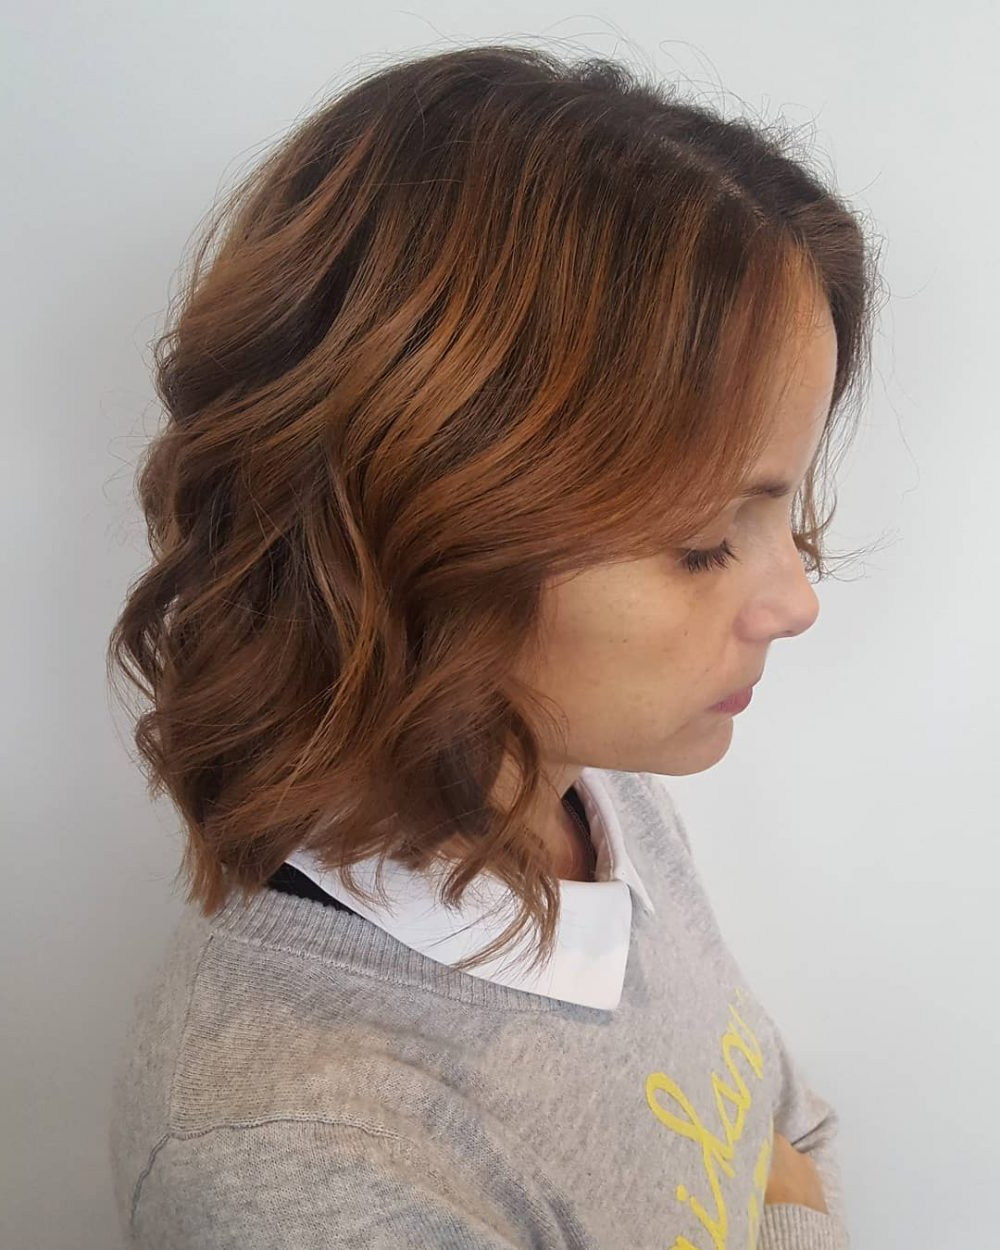 43 Greatest Wavy Bob Hairstyles – Short, Medium And Long In 2018 With Regard To Loosely Waved Messy Brunette Bob Hairstyles (View 9 of 20)